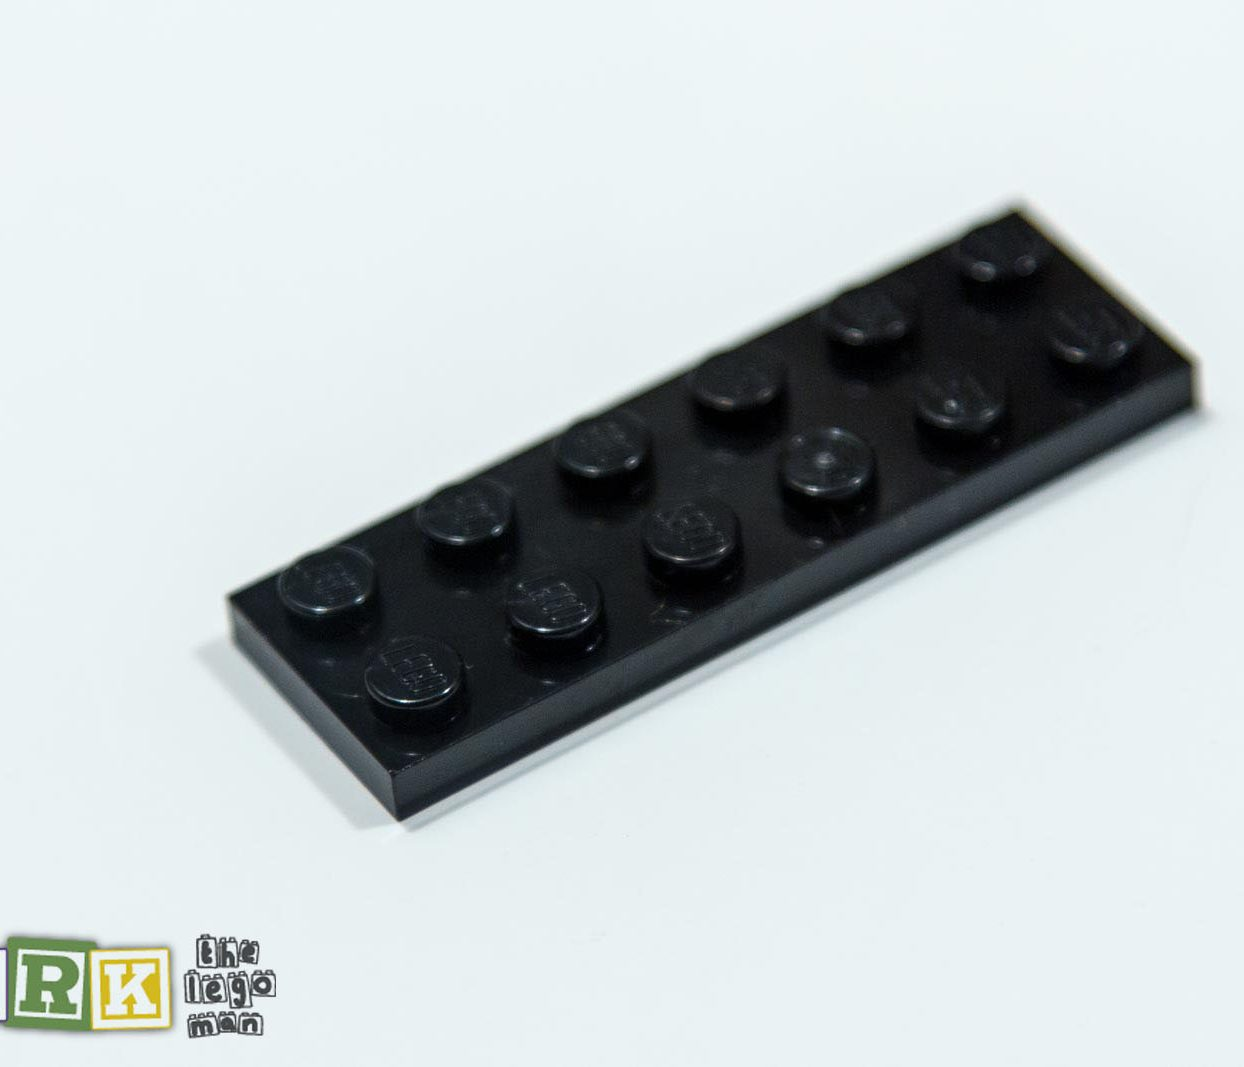 NEW Lego 379526 3795 1x Black 2x6 Plate 2X6